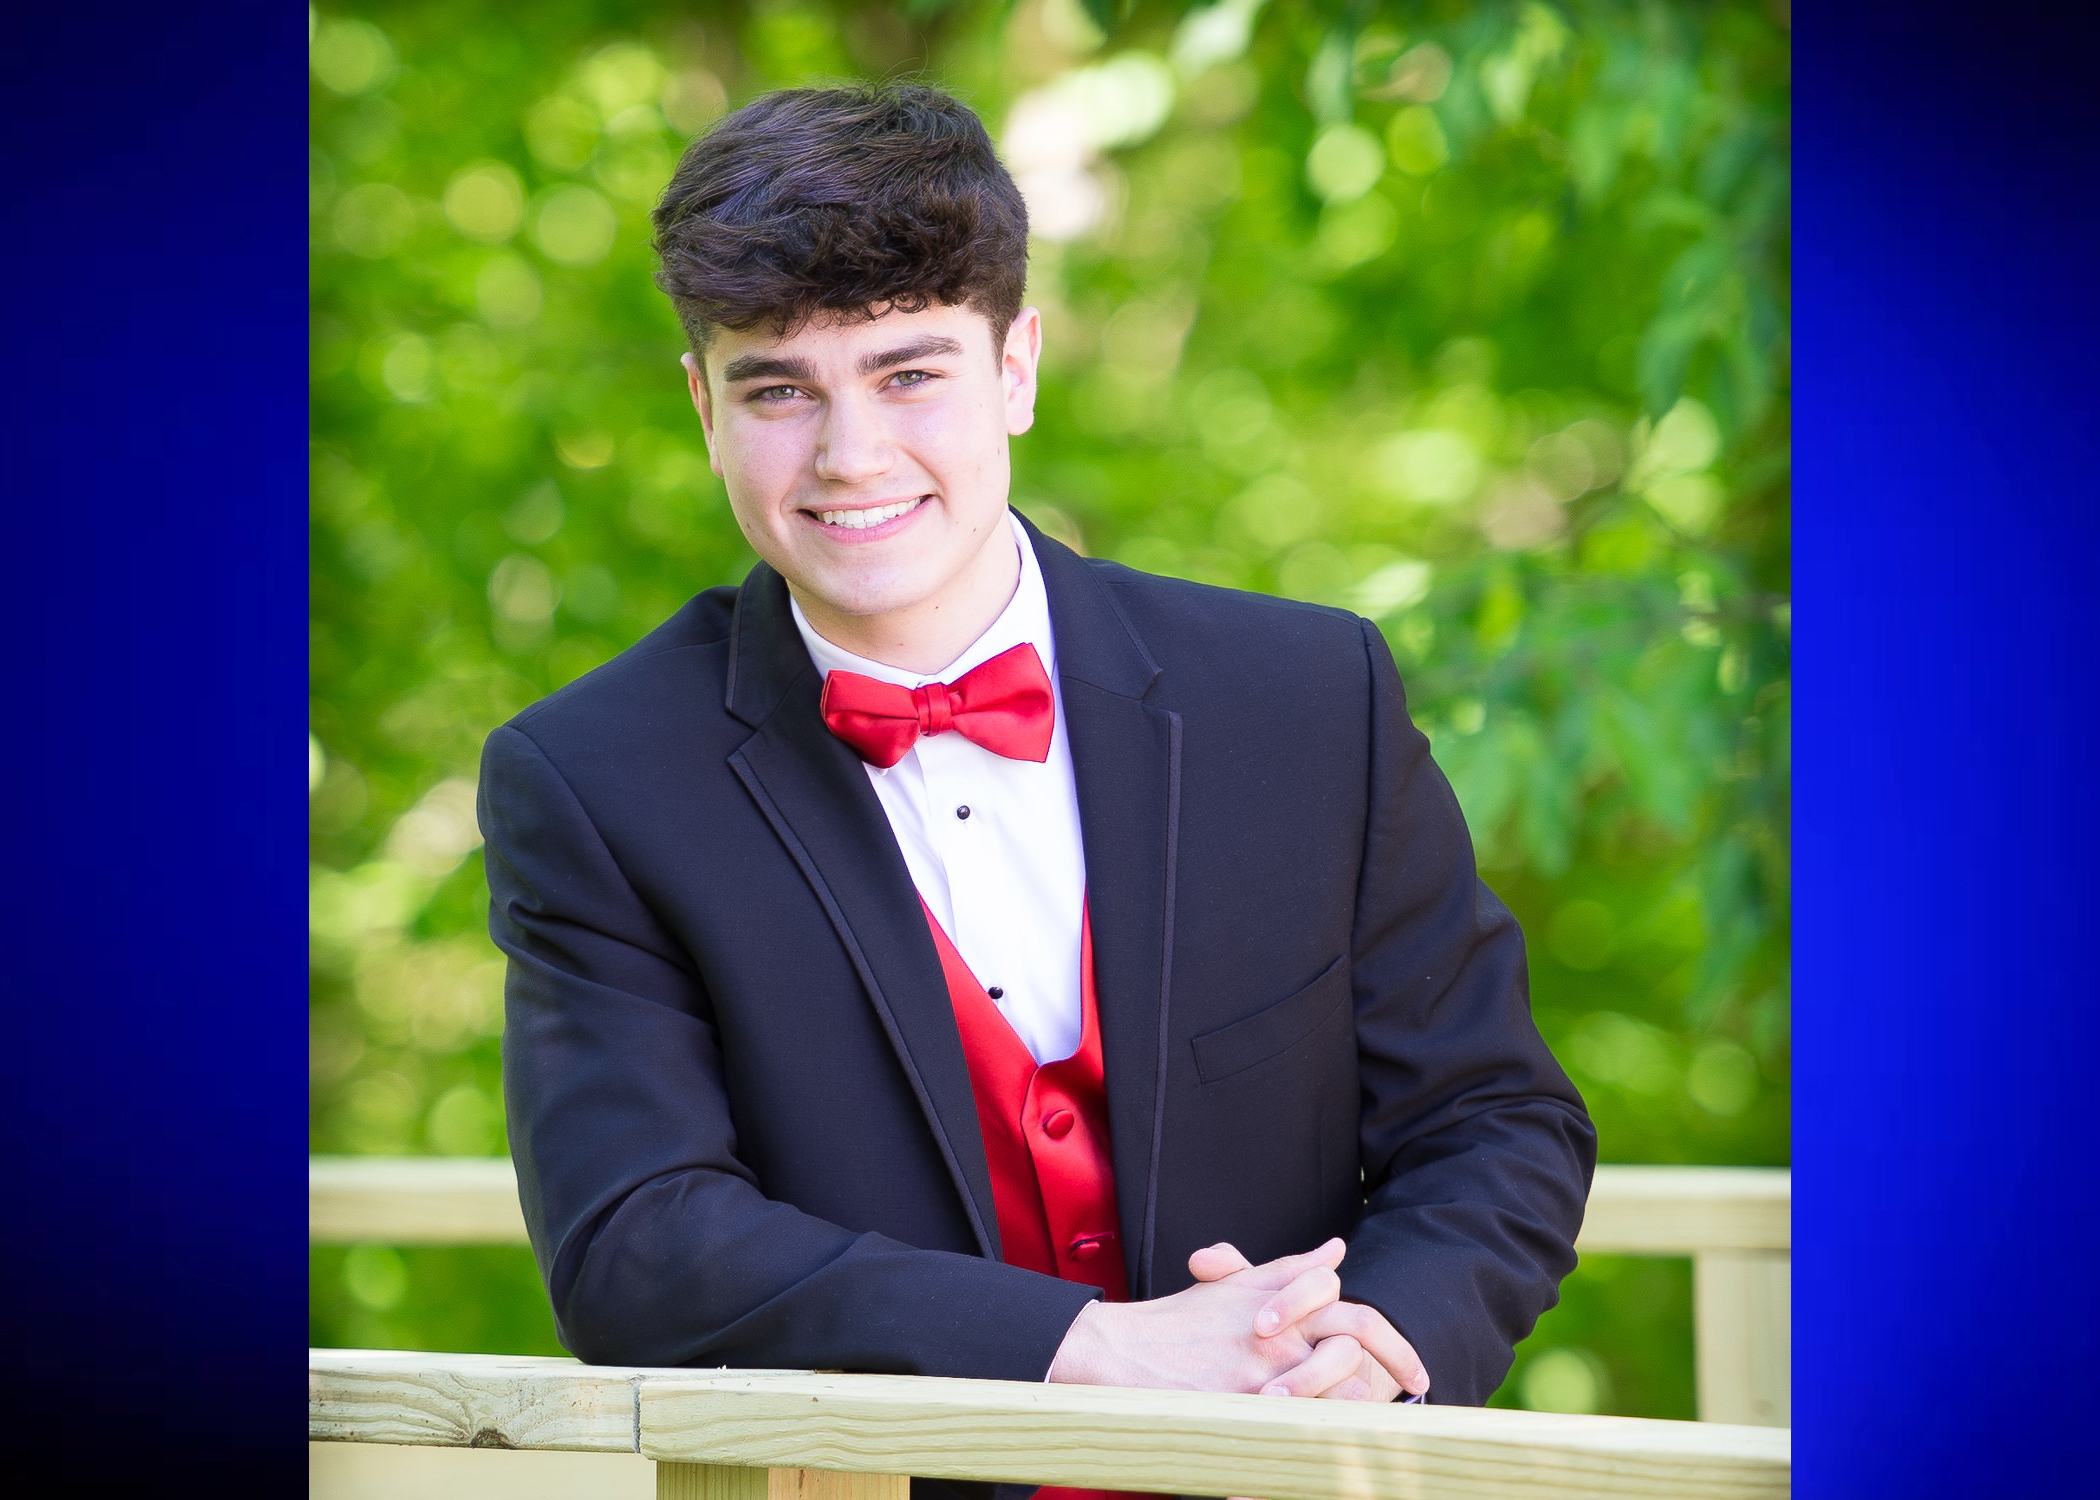 Trussville teen to attend leadership conference in Washington